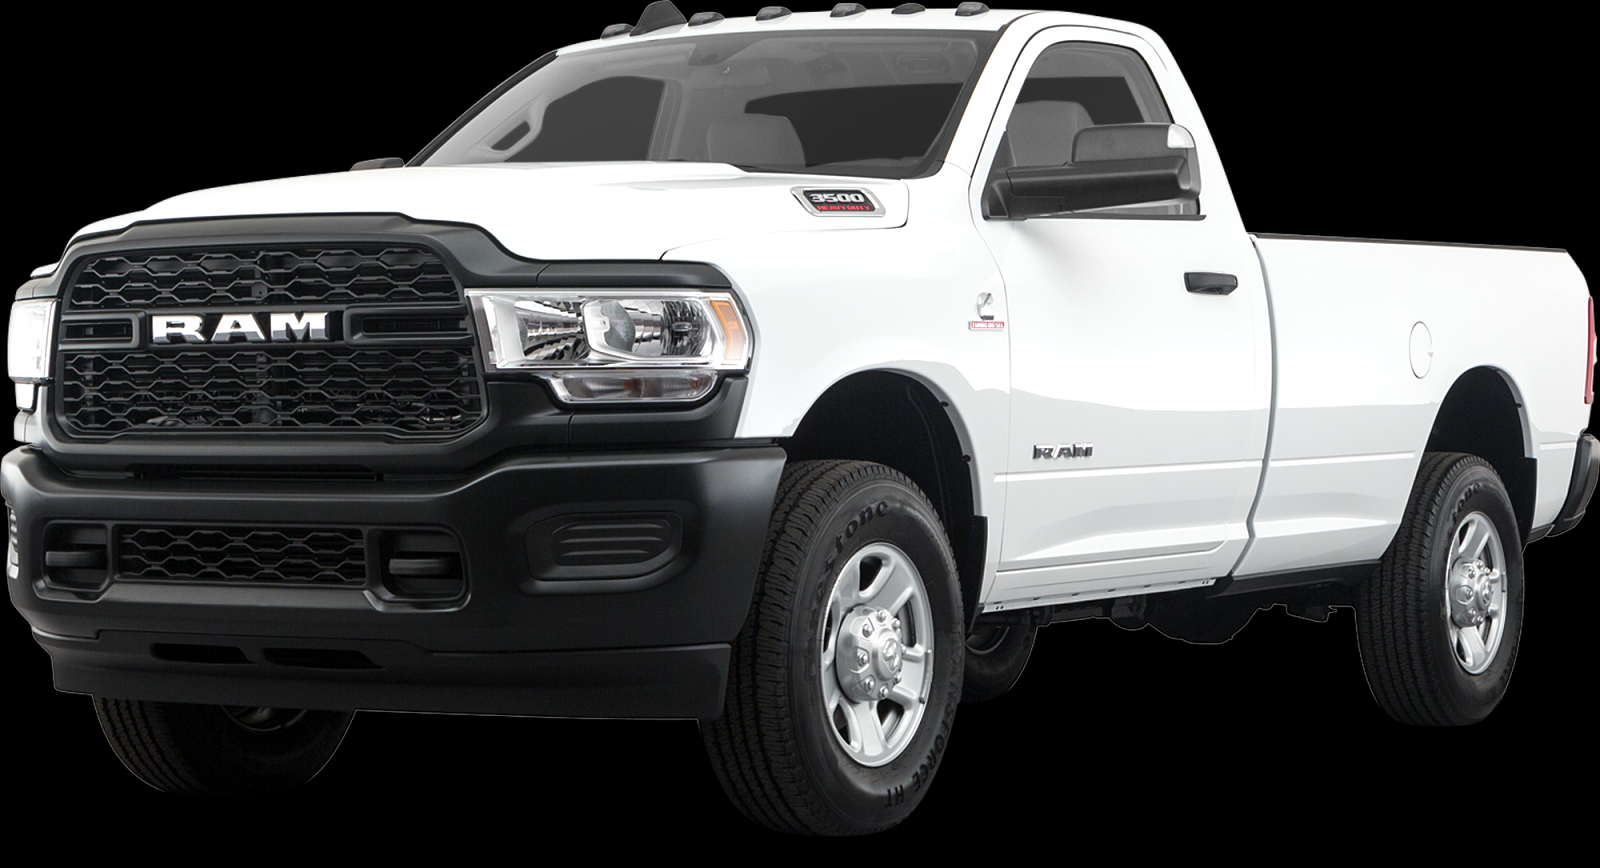 2021 dodge ram incentives Price and Release date